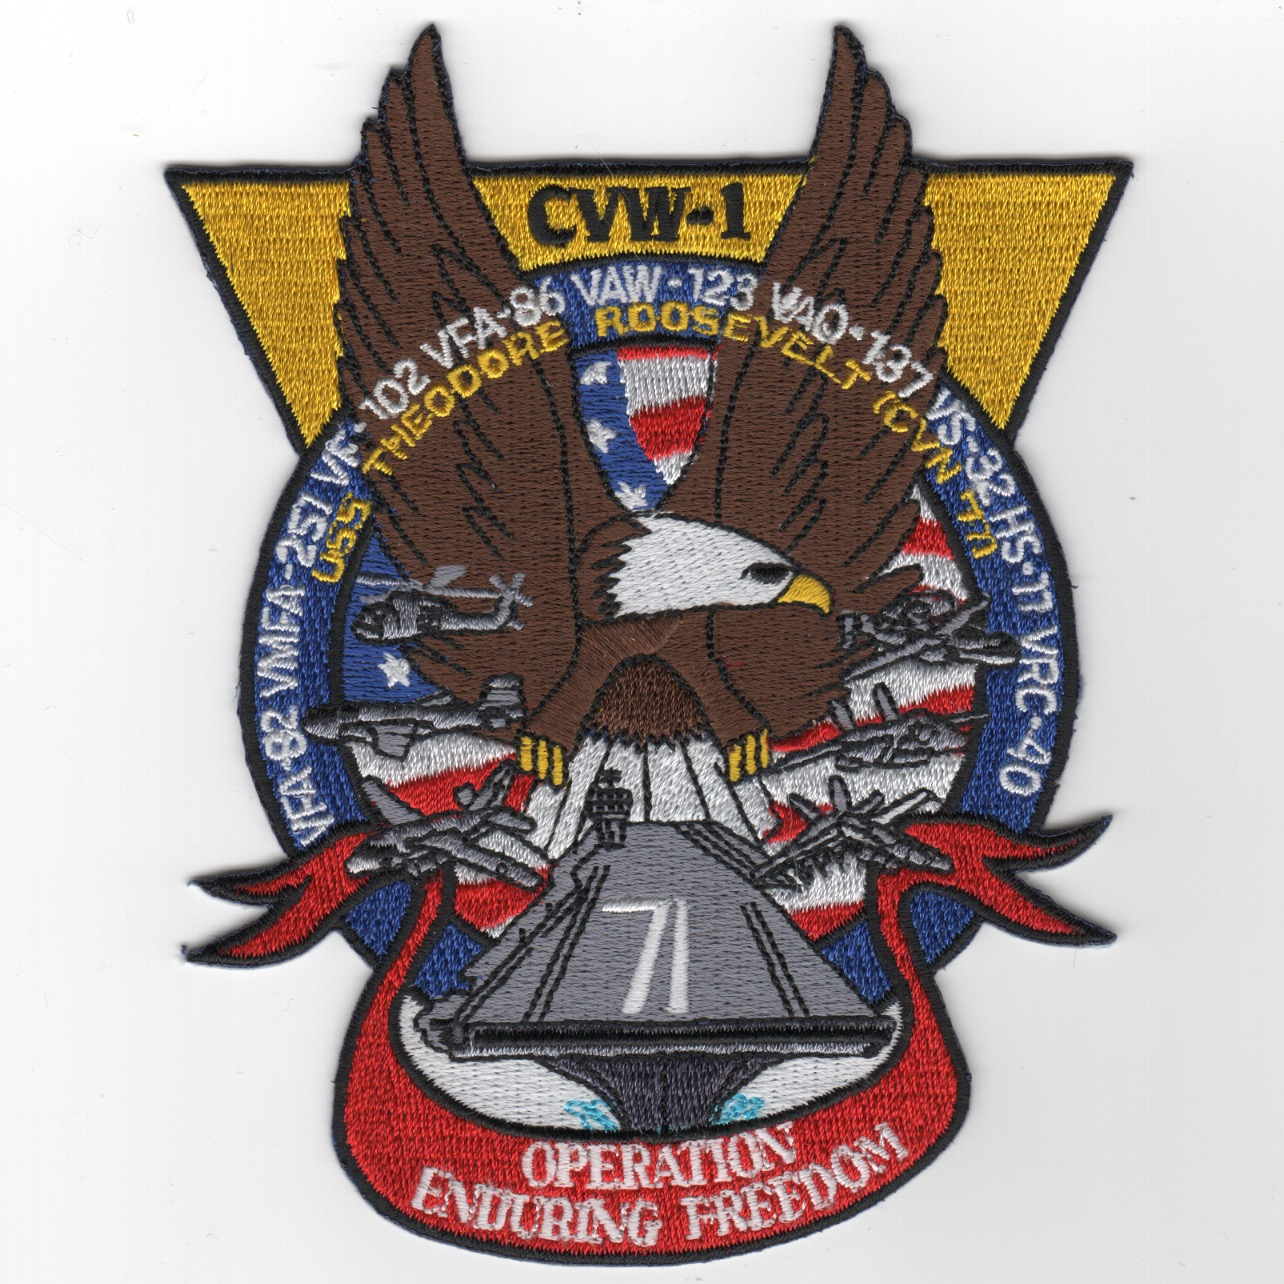 496) CVN-71/CVW-1 'OEF' Cruise Patch